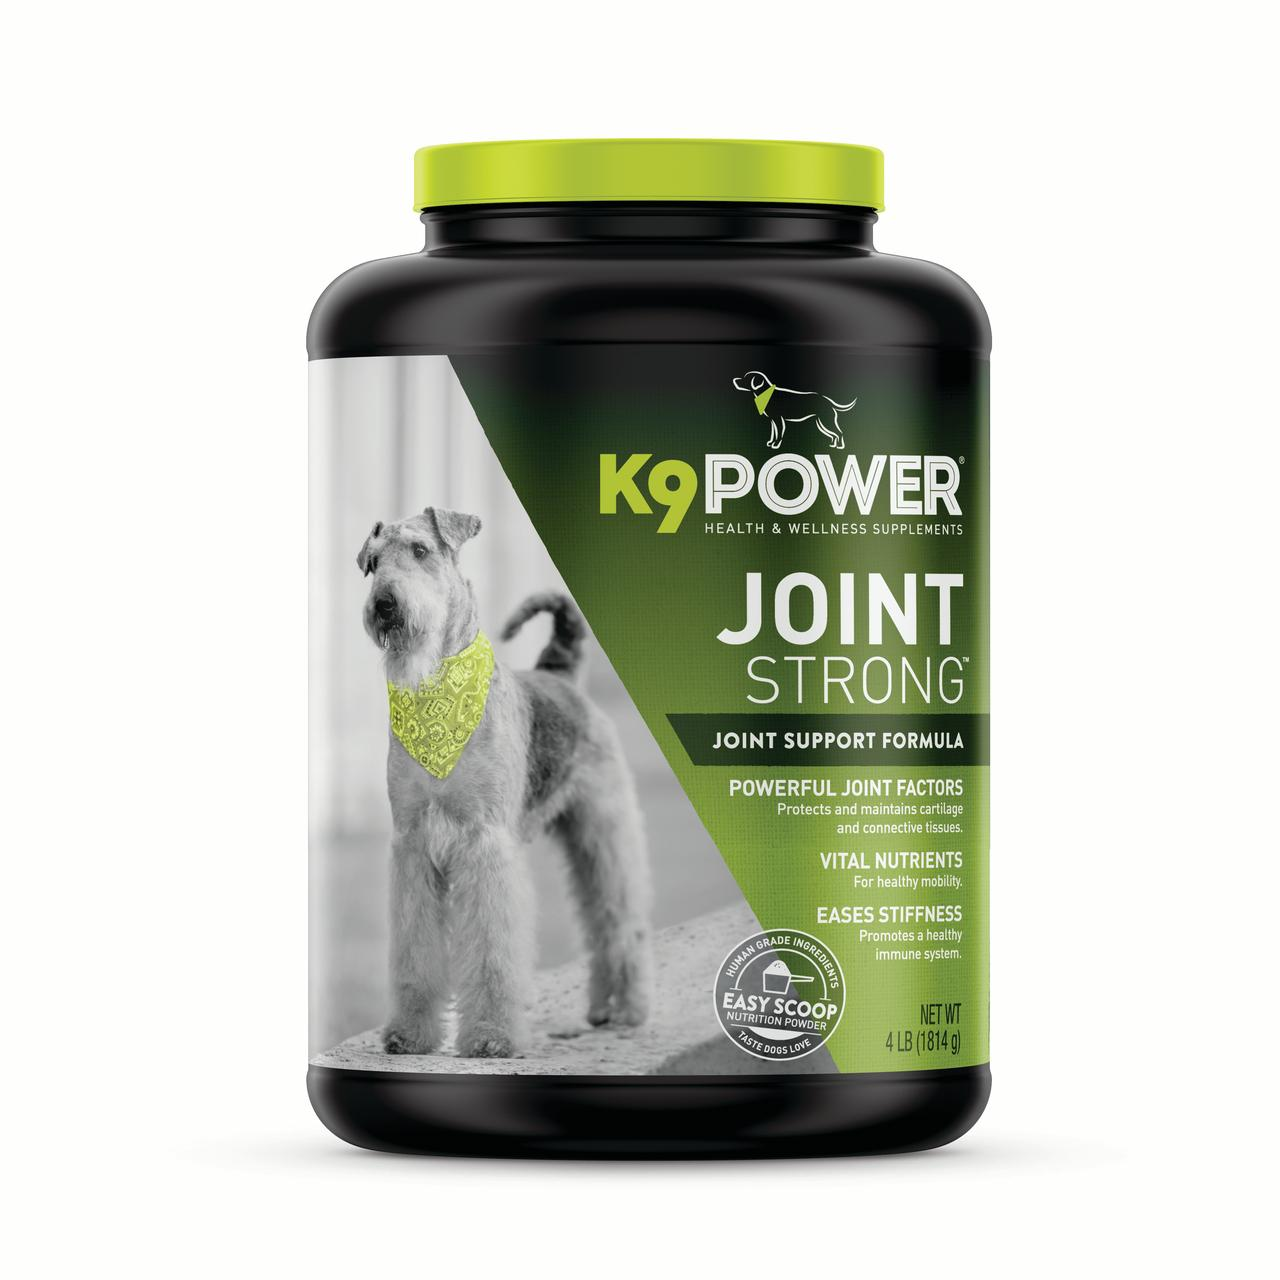 K9 Power Joint Strong 鈩 - 2lb